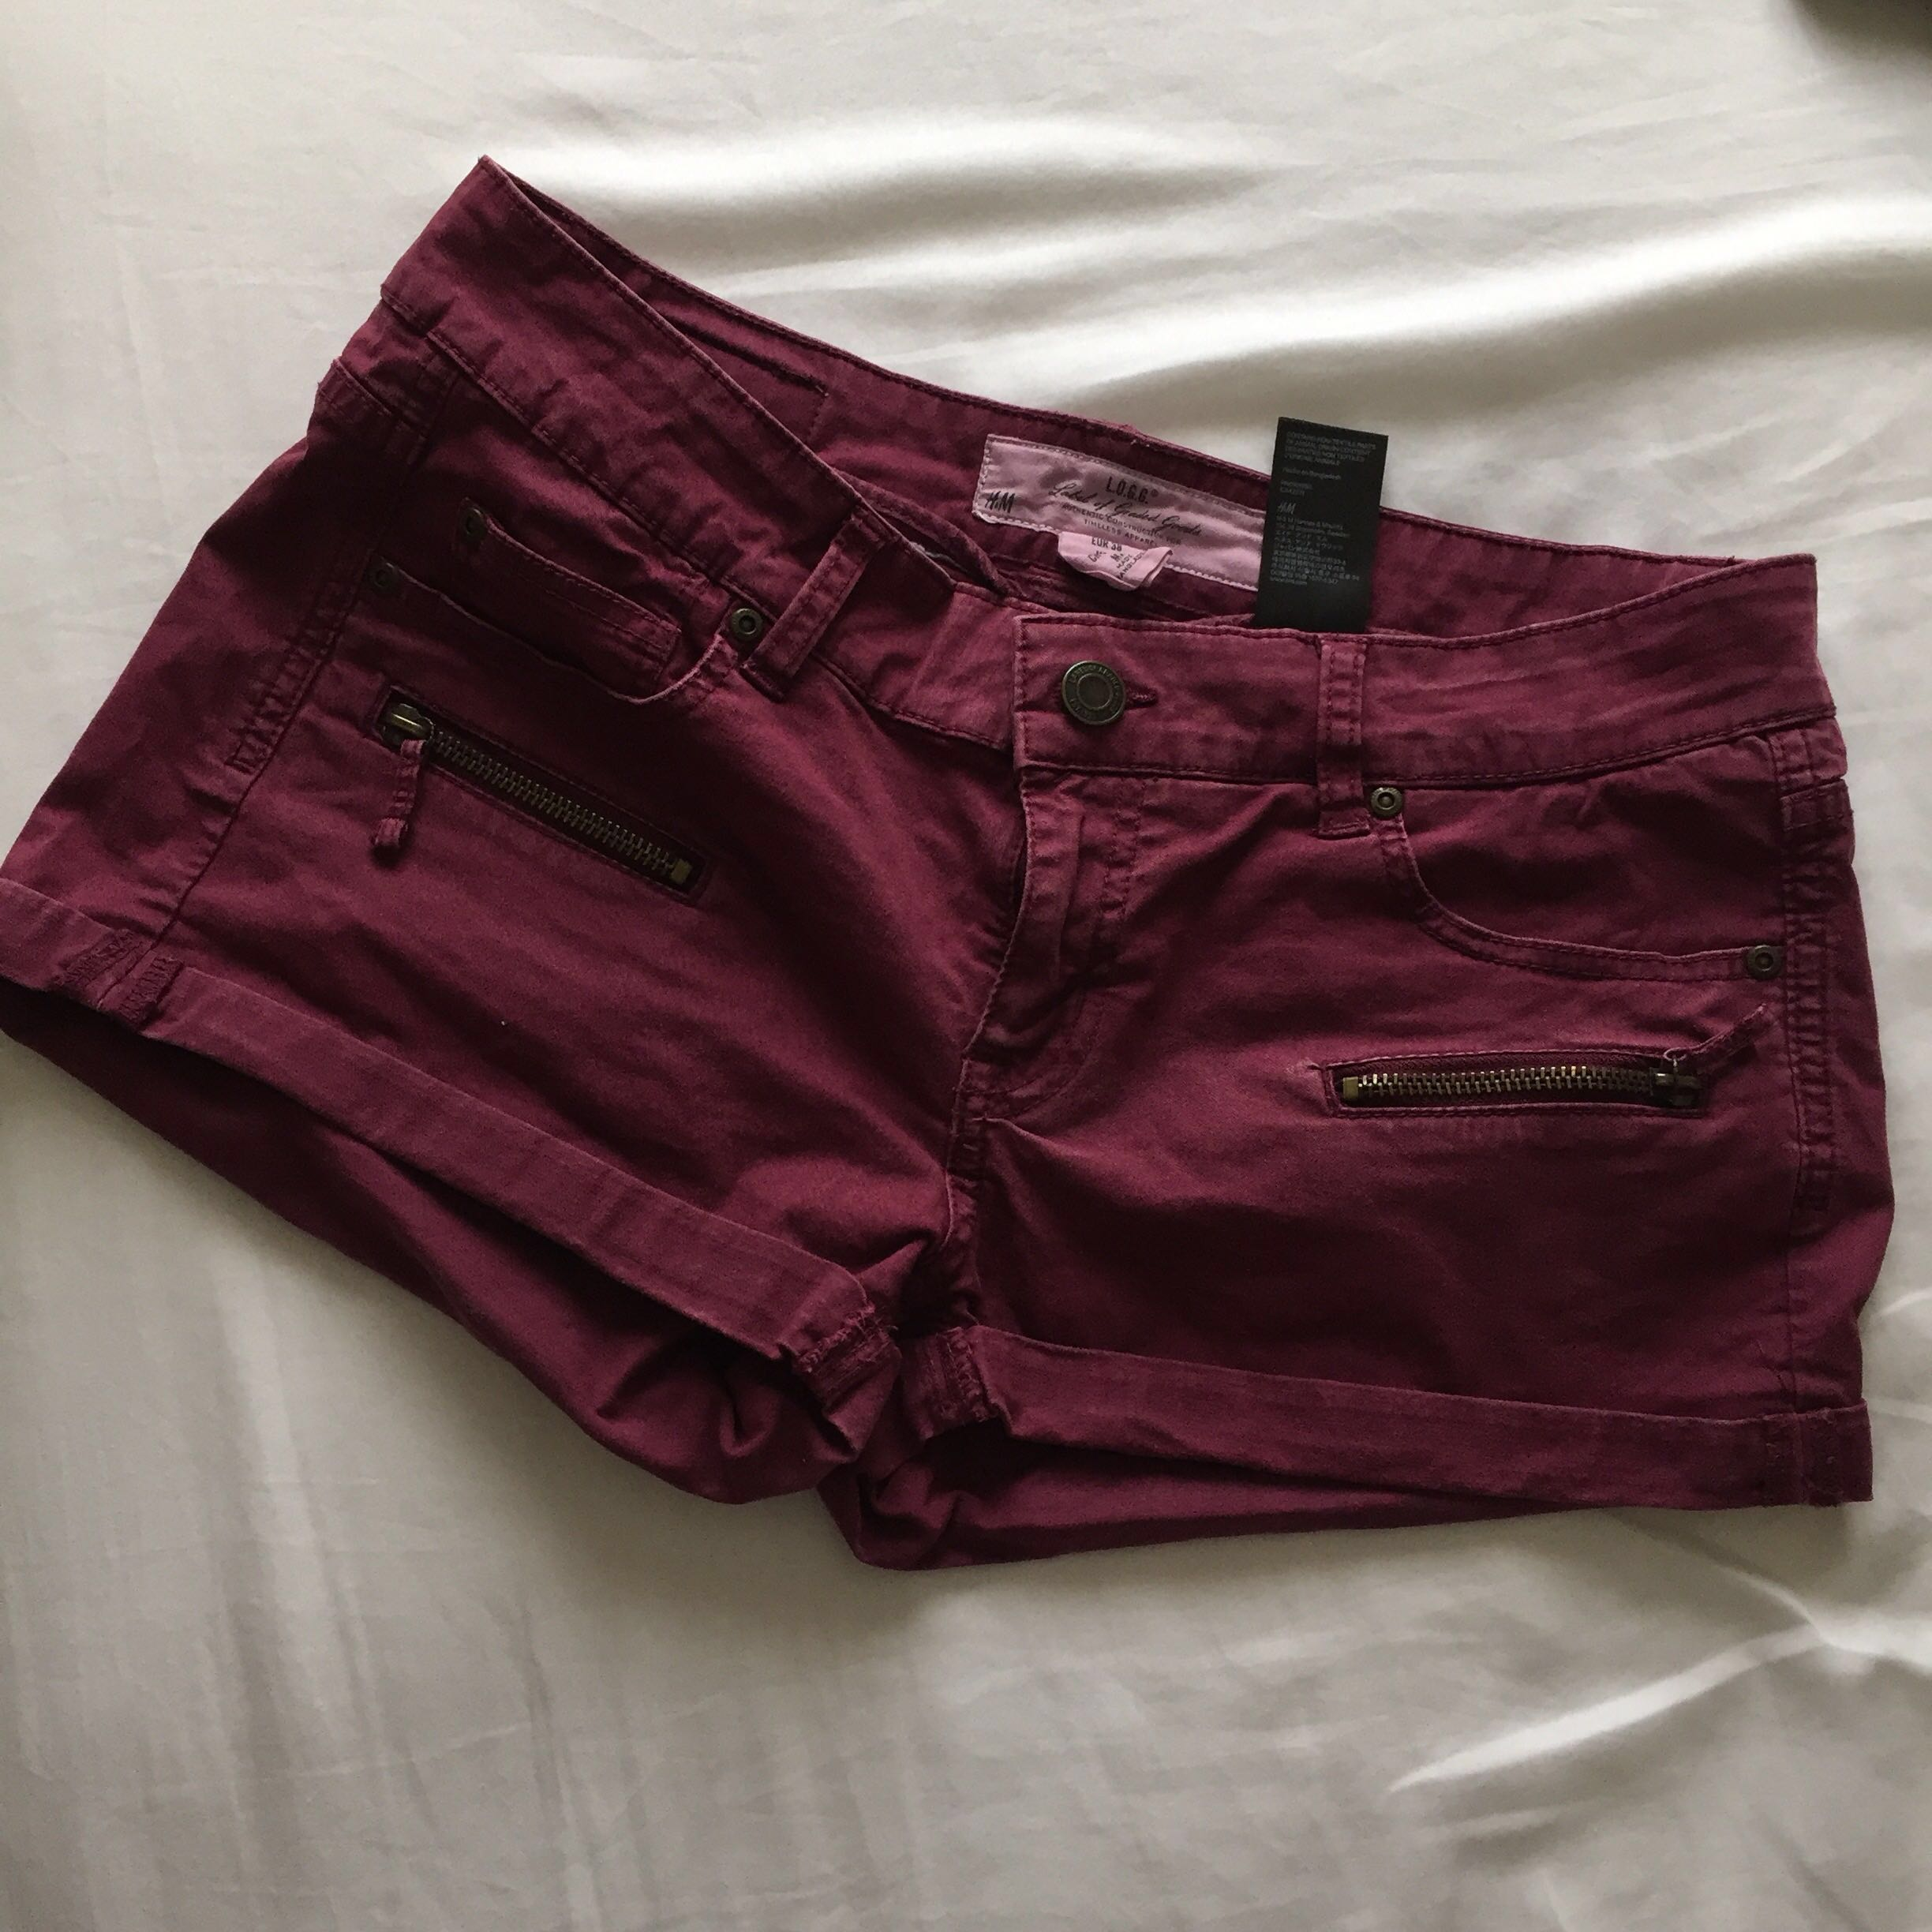 H&M Maroon-Coloured Shorts